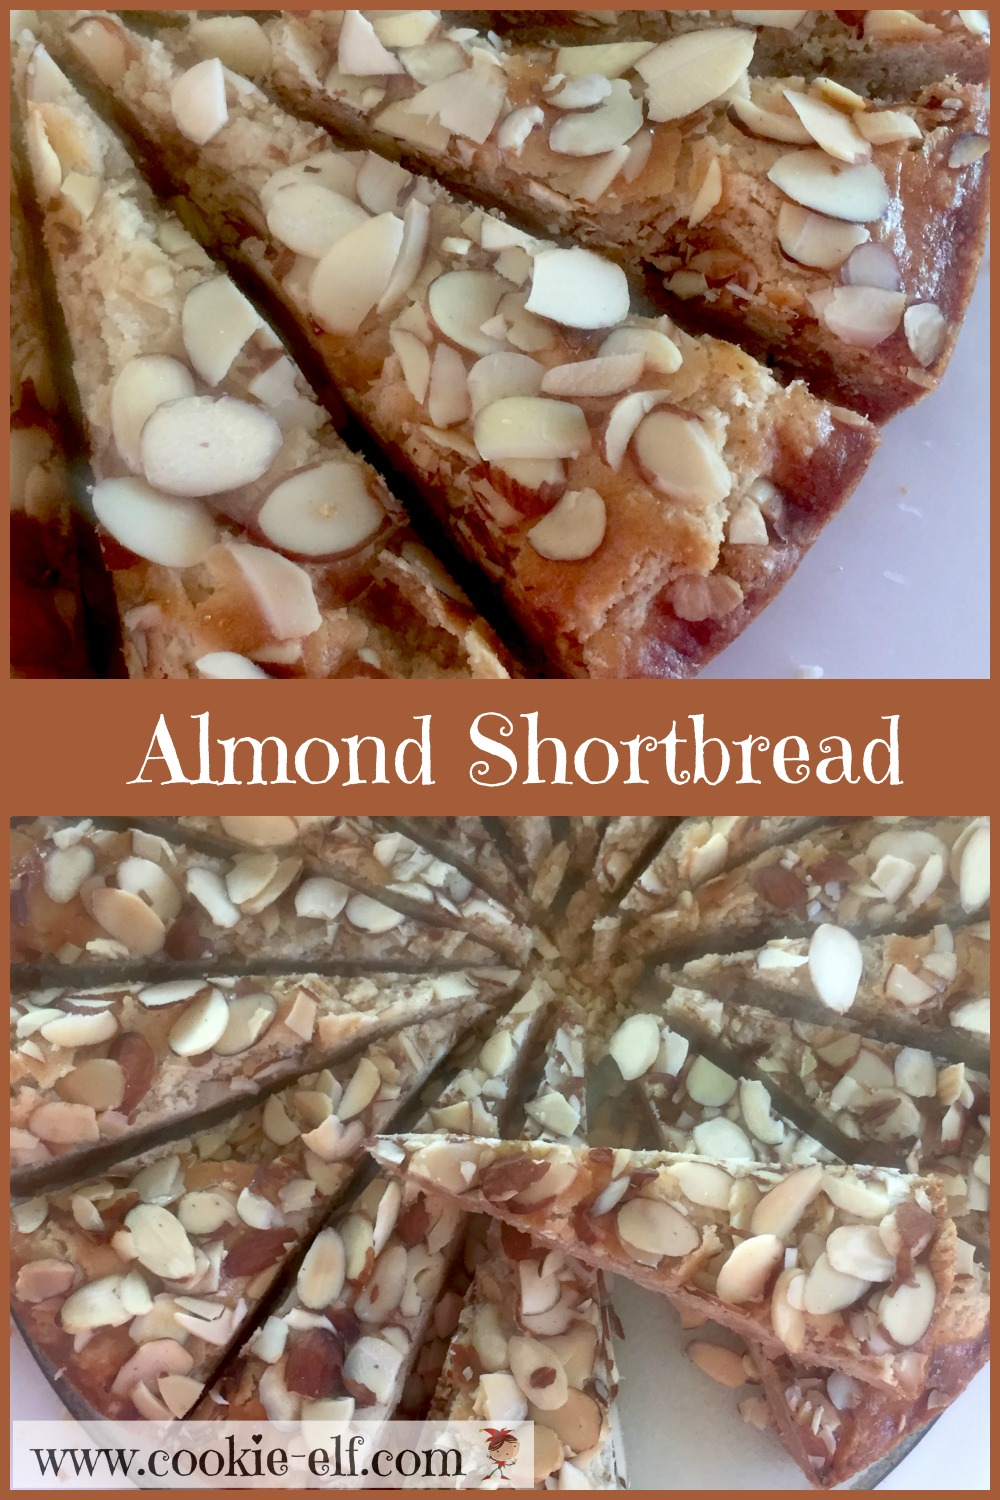 Almond Shortbread with The Cookie Elf